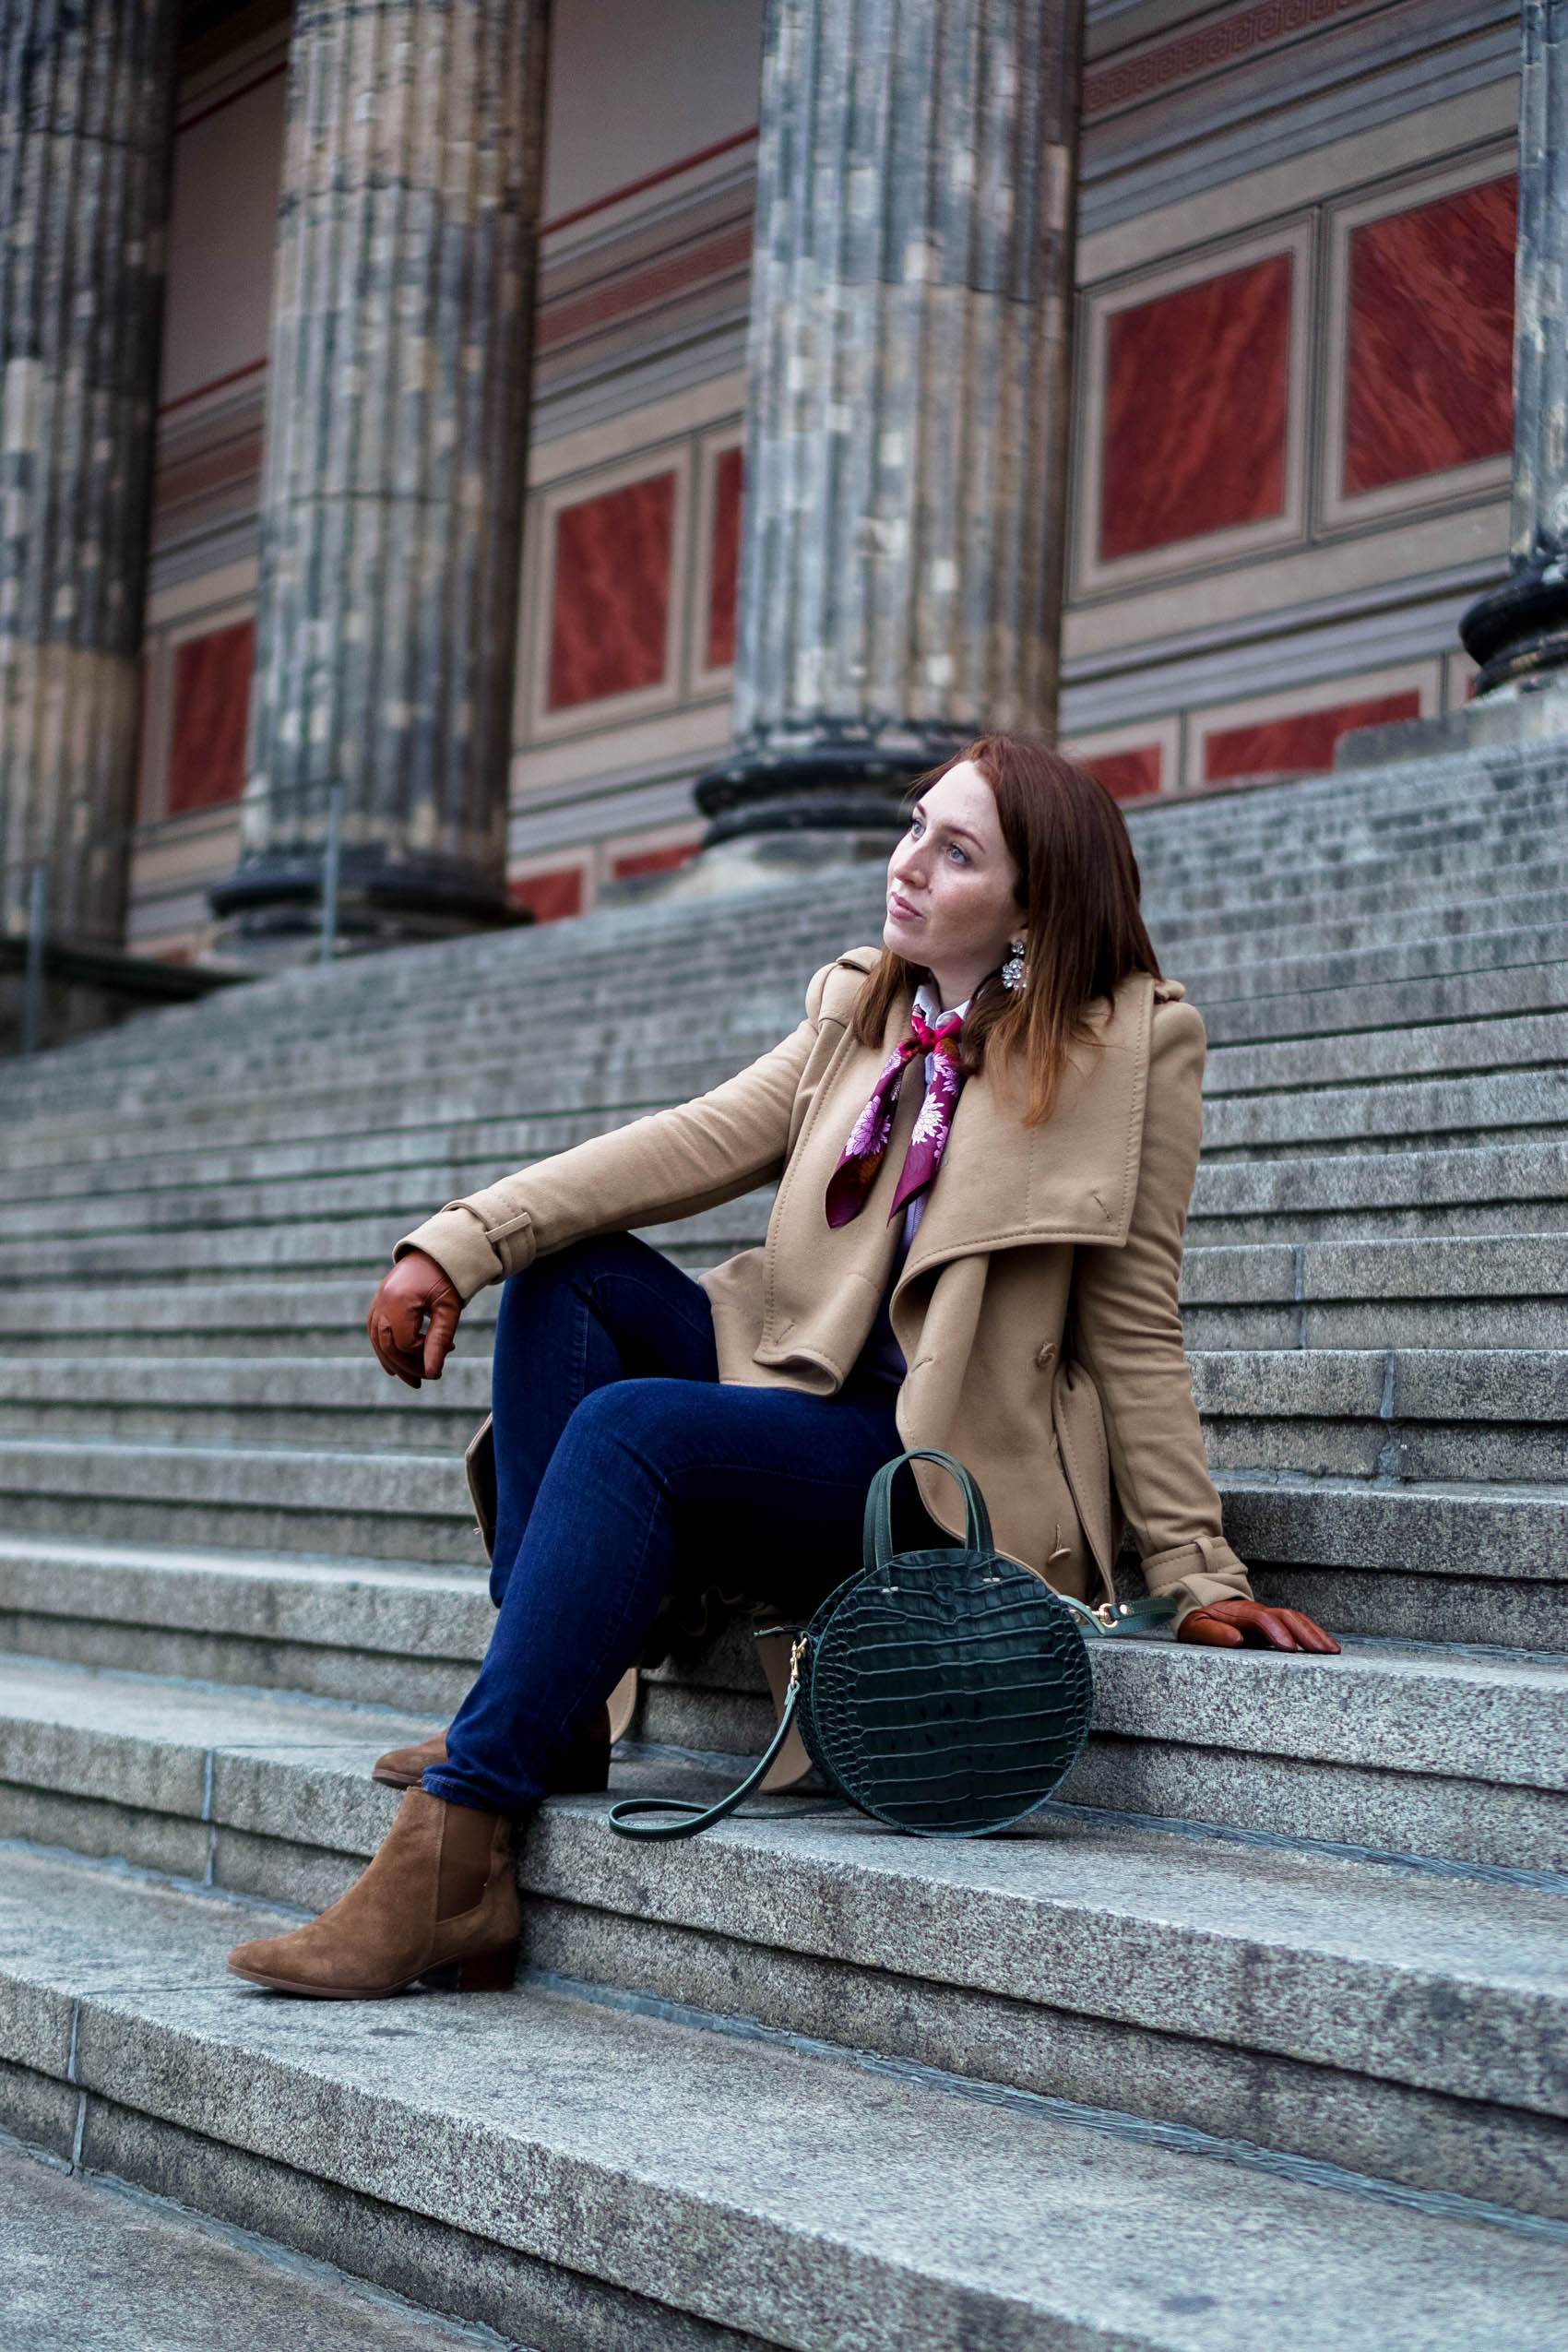 Girl in camel coat on steps in Berlin